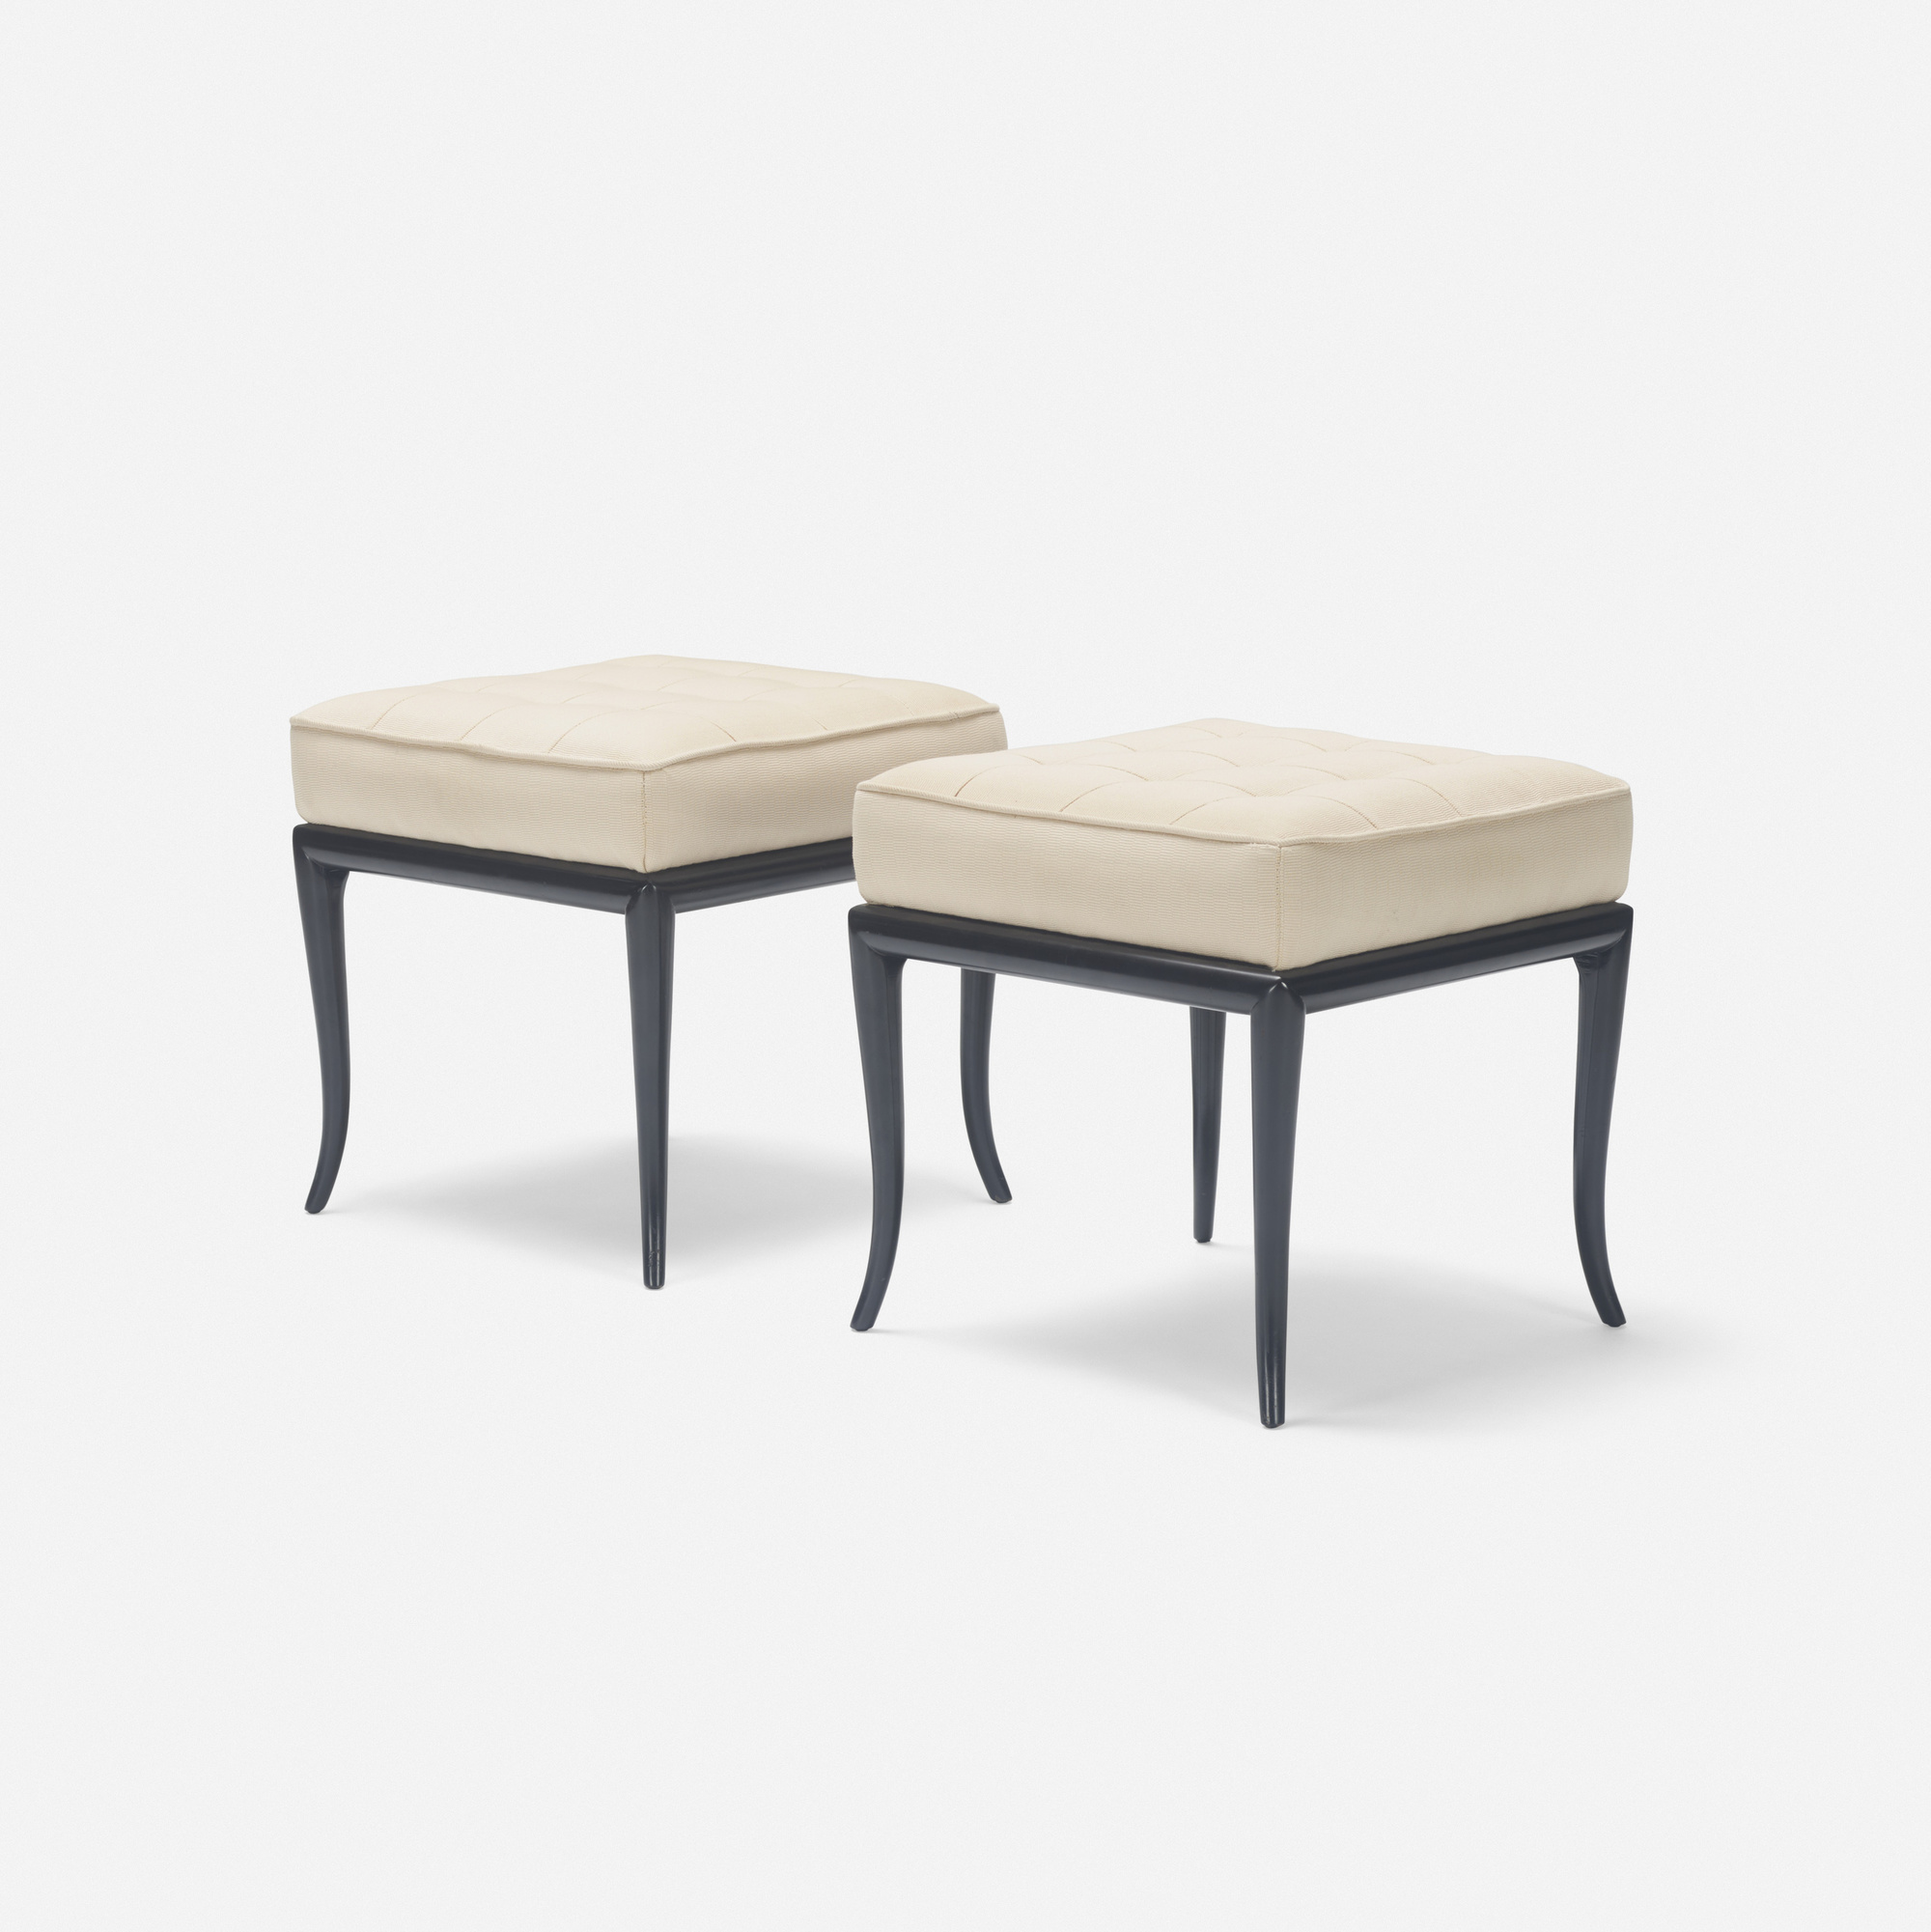 383: T.H. Robsjohn-Gibbings / benches, pair (1 of 2)